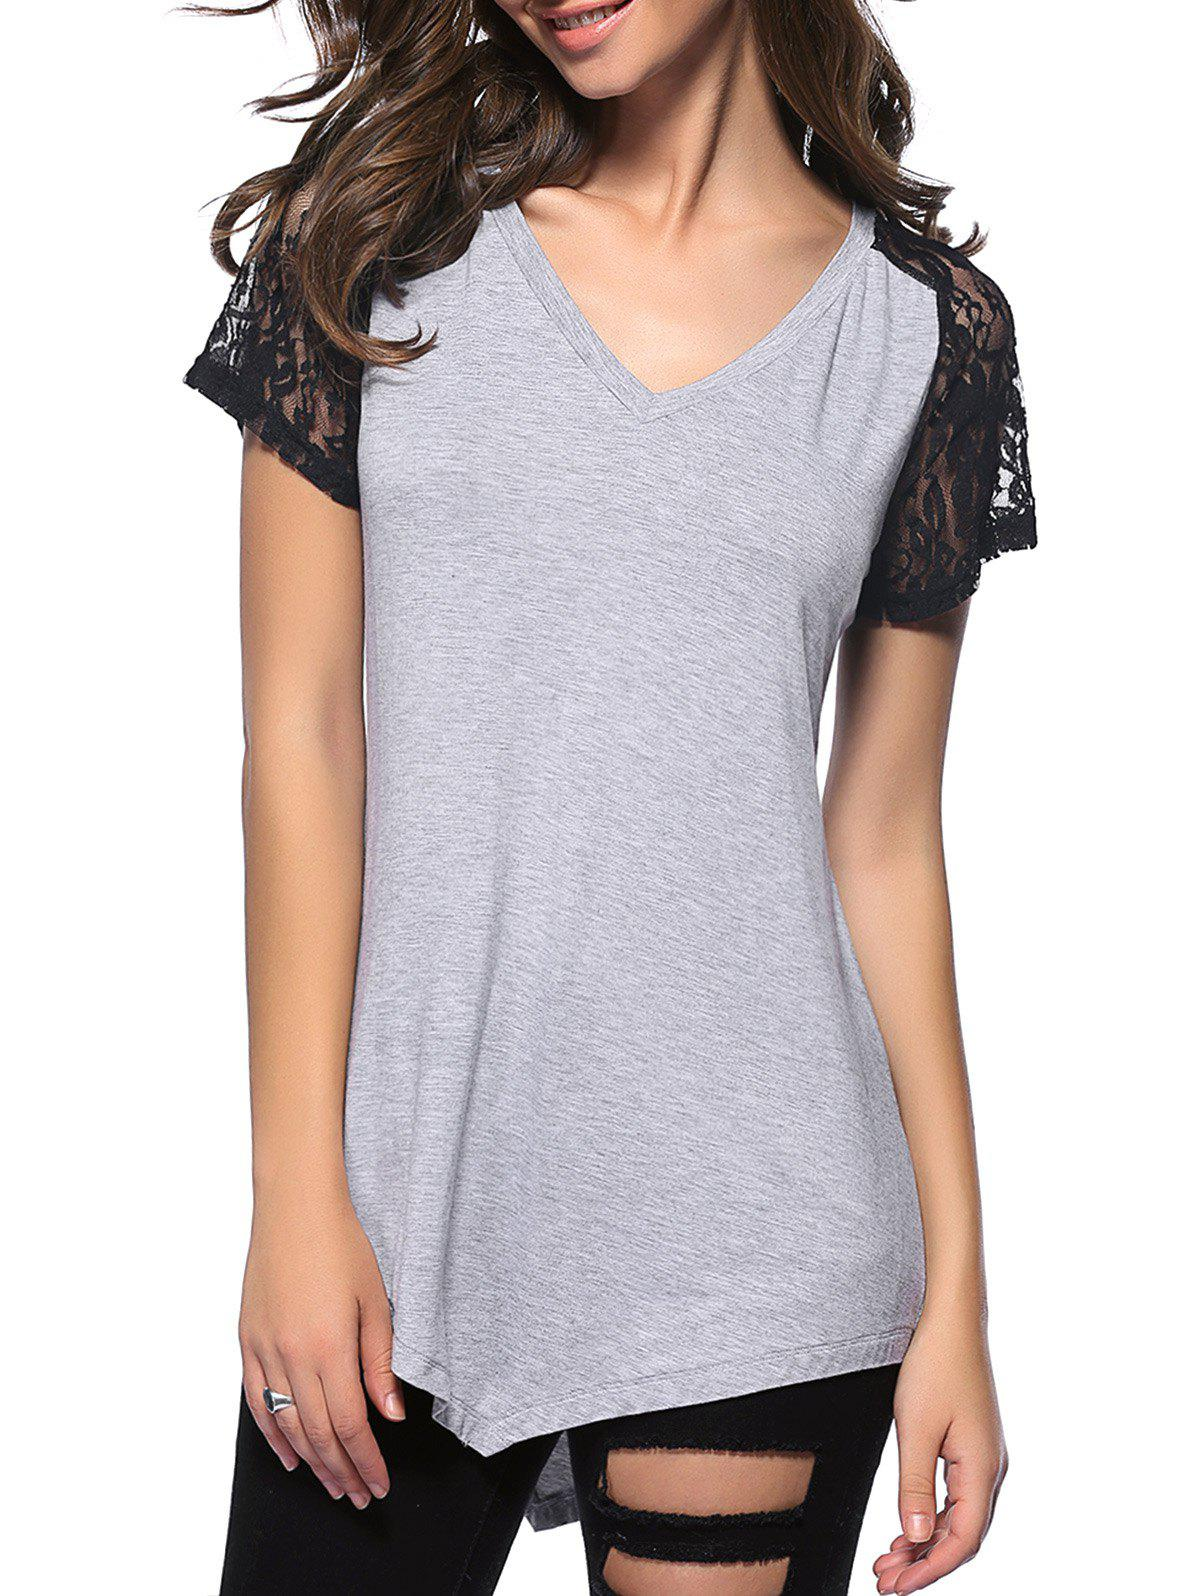 Casual Women's V-Neck Short Sleeve Shrink Fold Lace T-Shirt